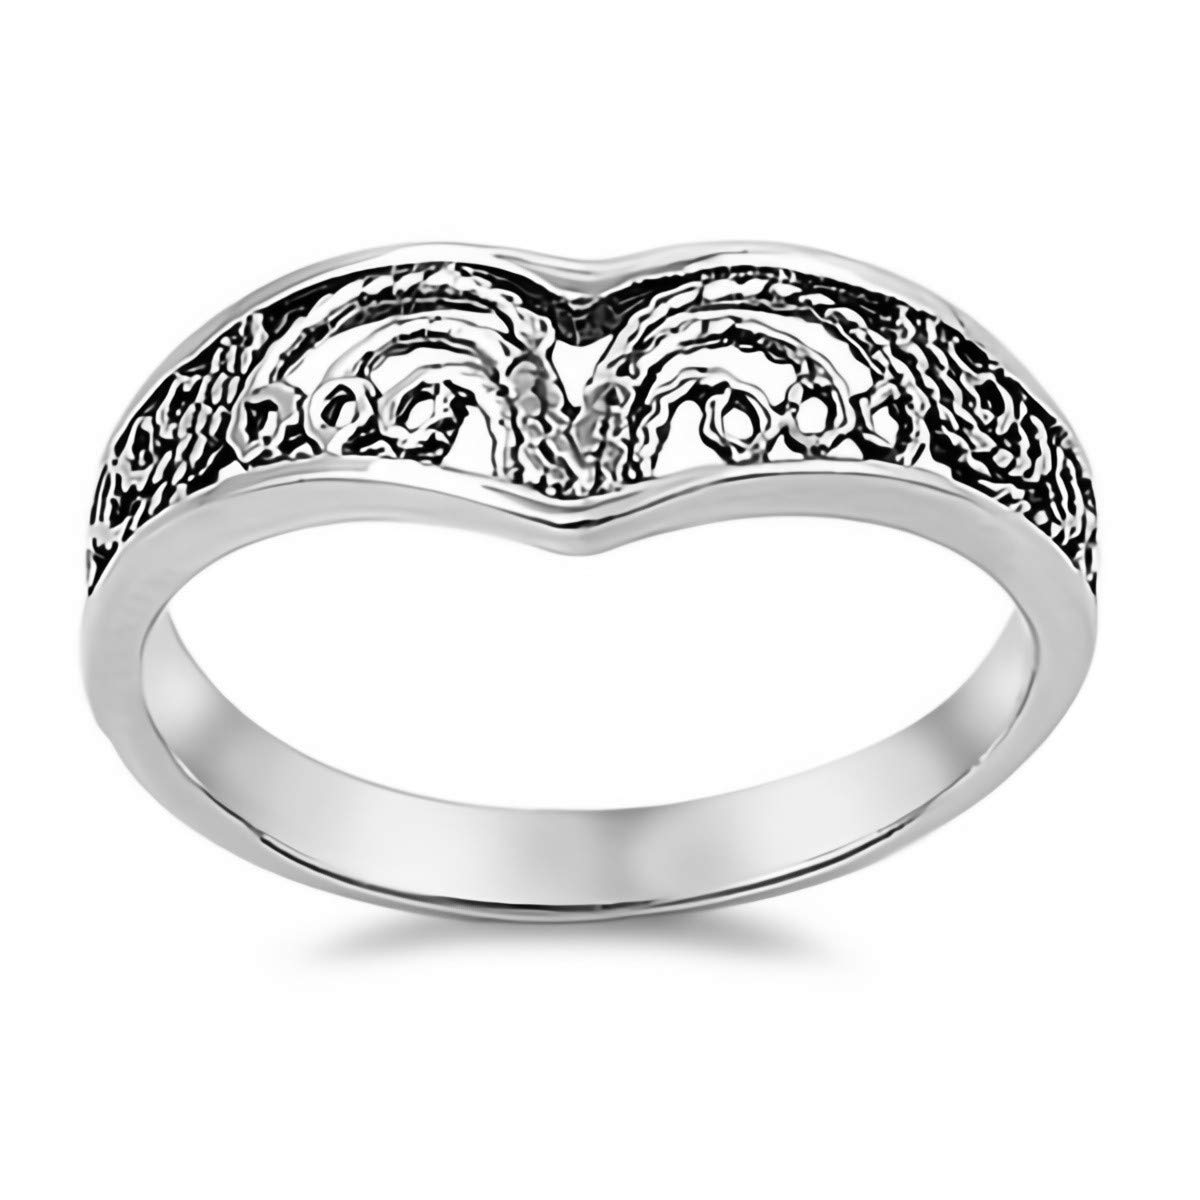 Filigree Cute Jewelry Gift for Women in Gift Box Glitzs Jewels 925 Sterling Silver Ring